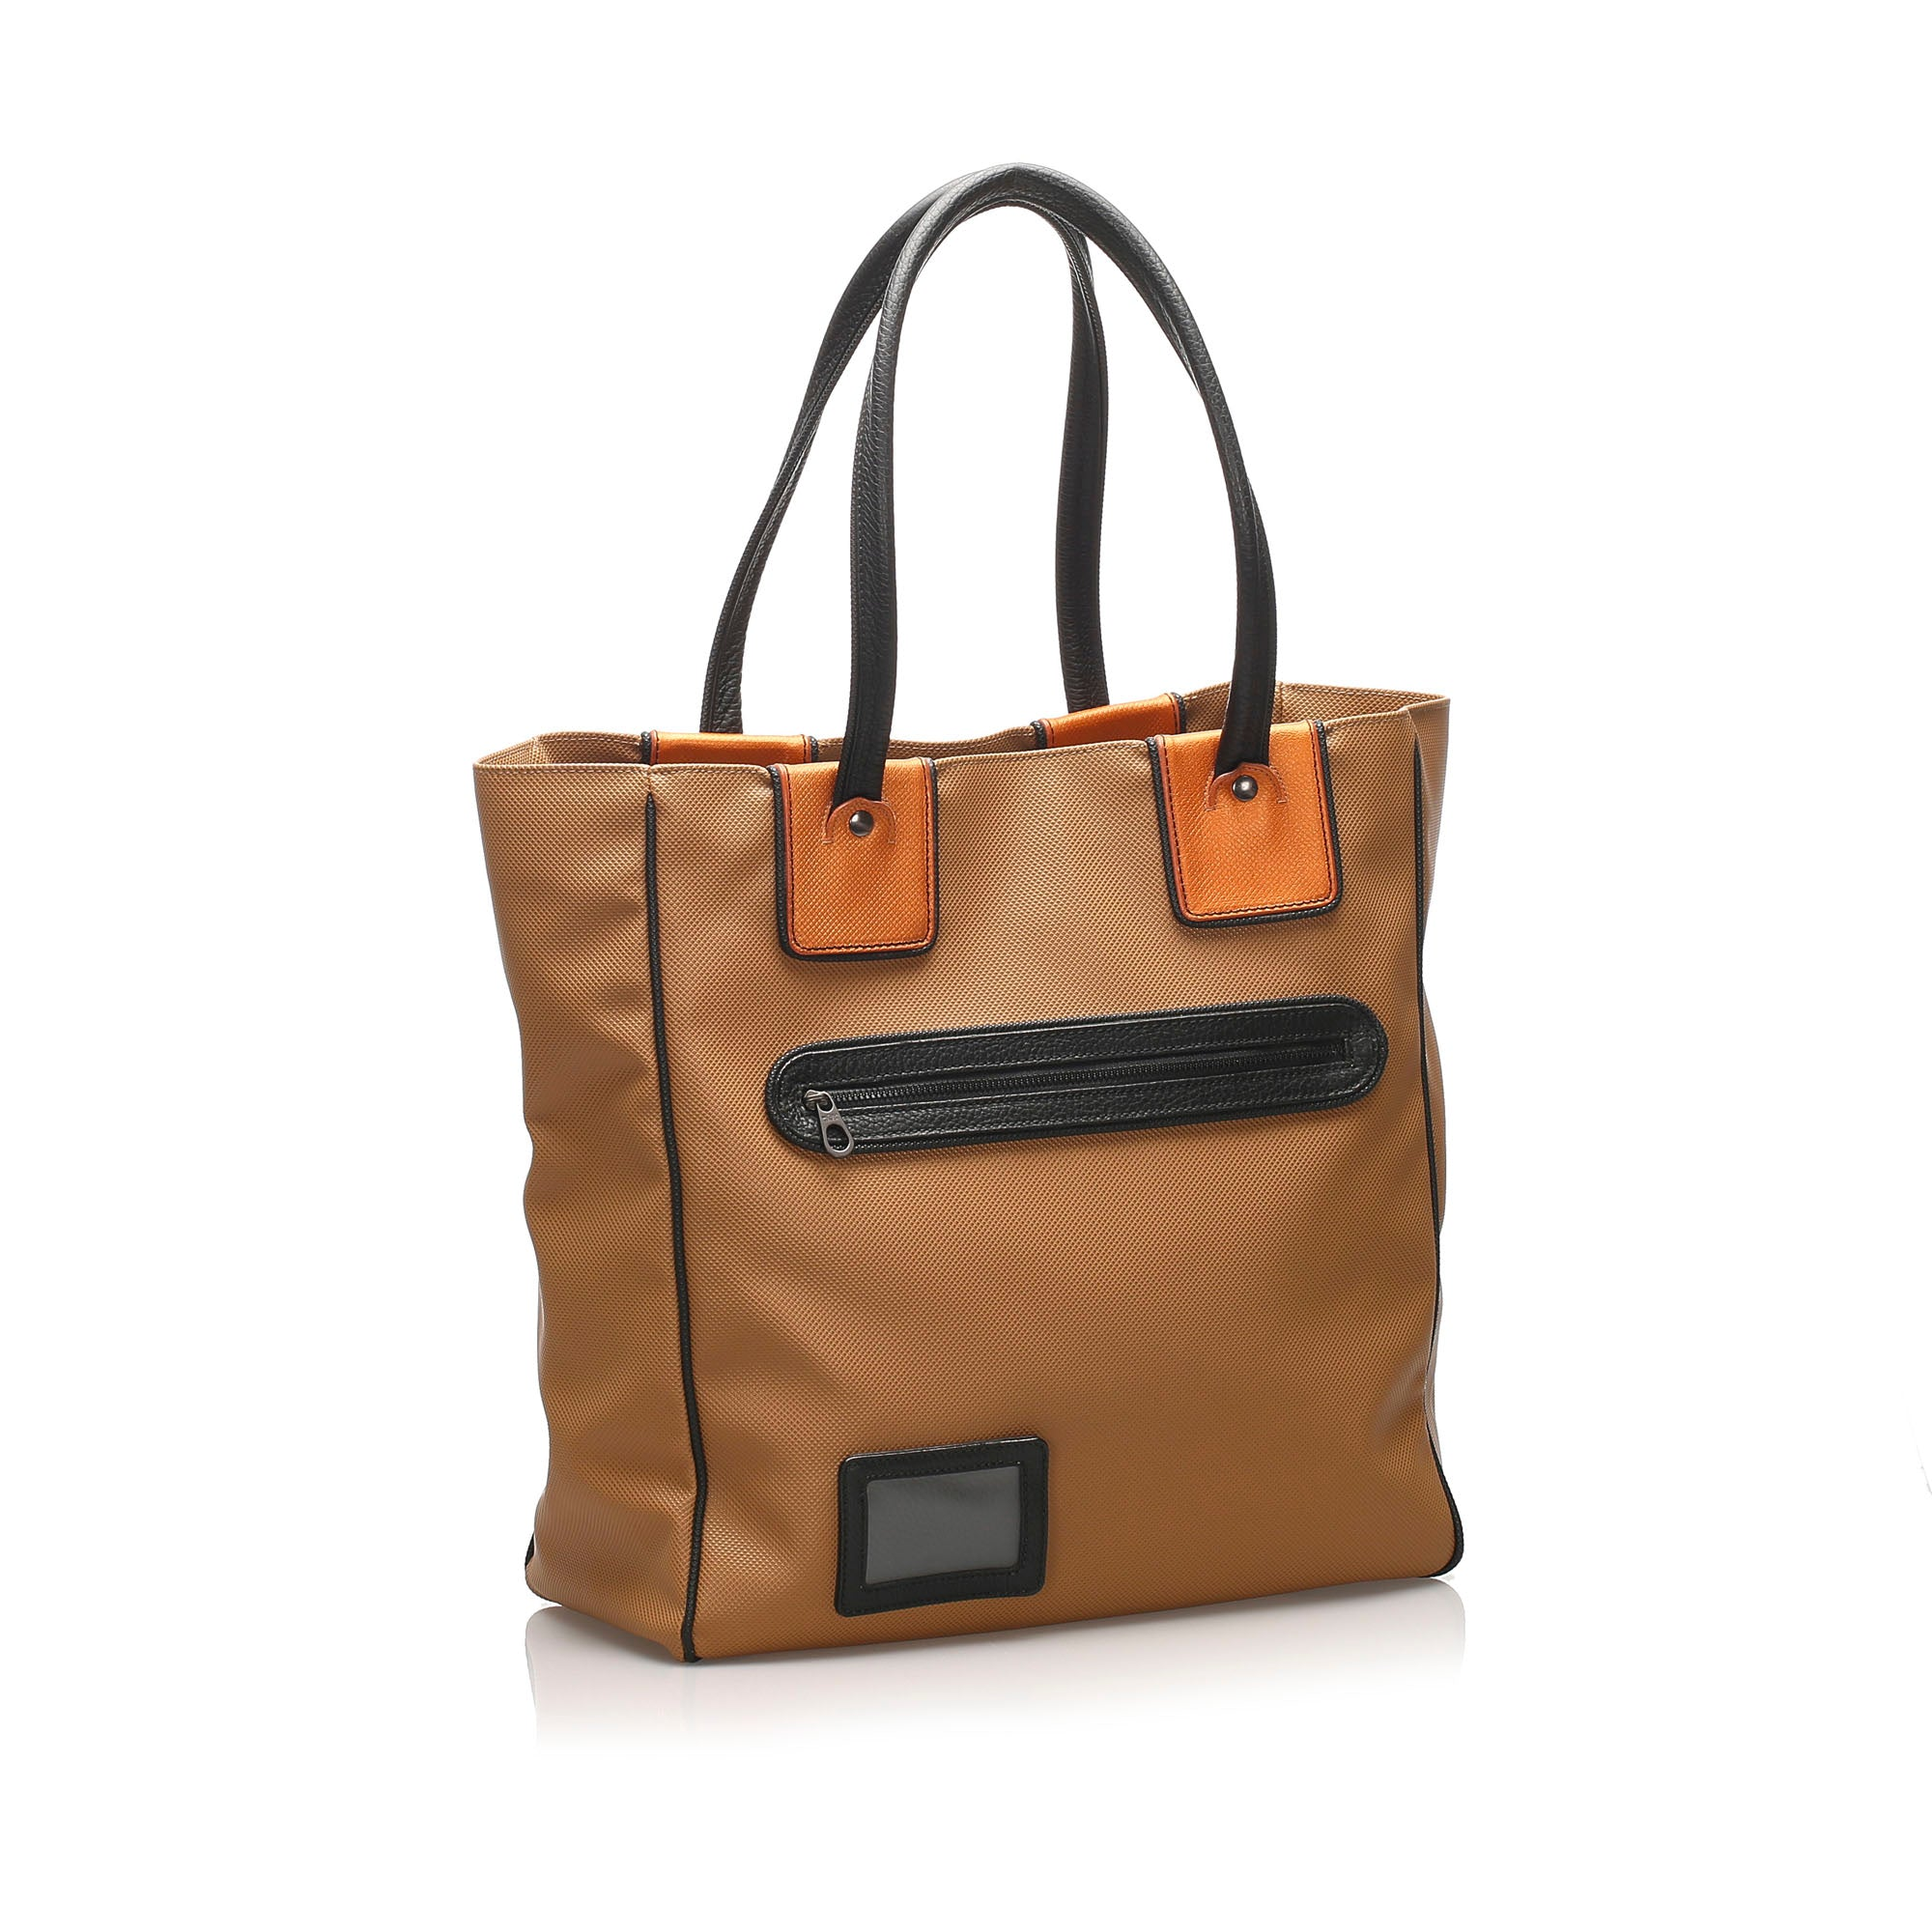 Bottega Veneta Brown Leather Tote Bag